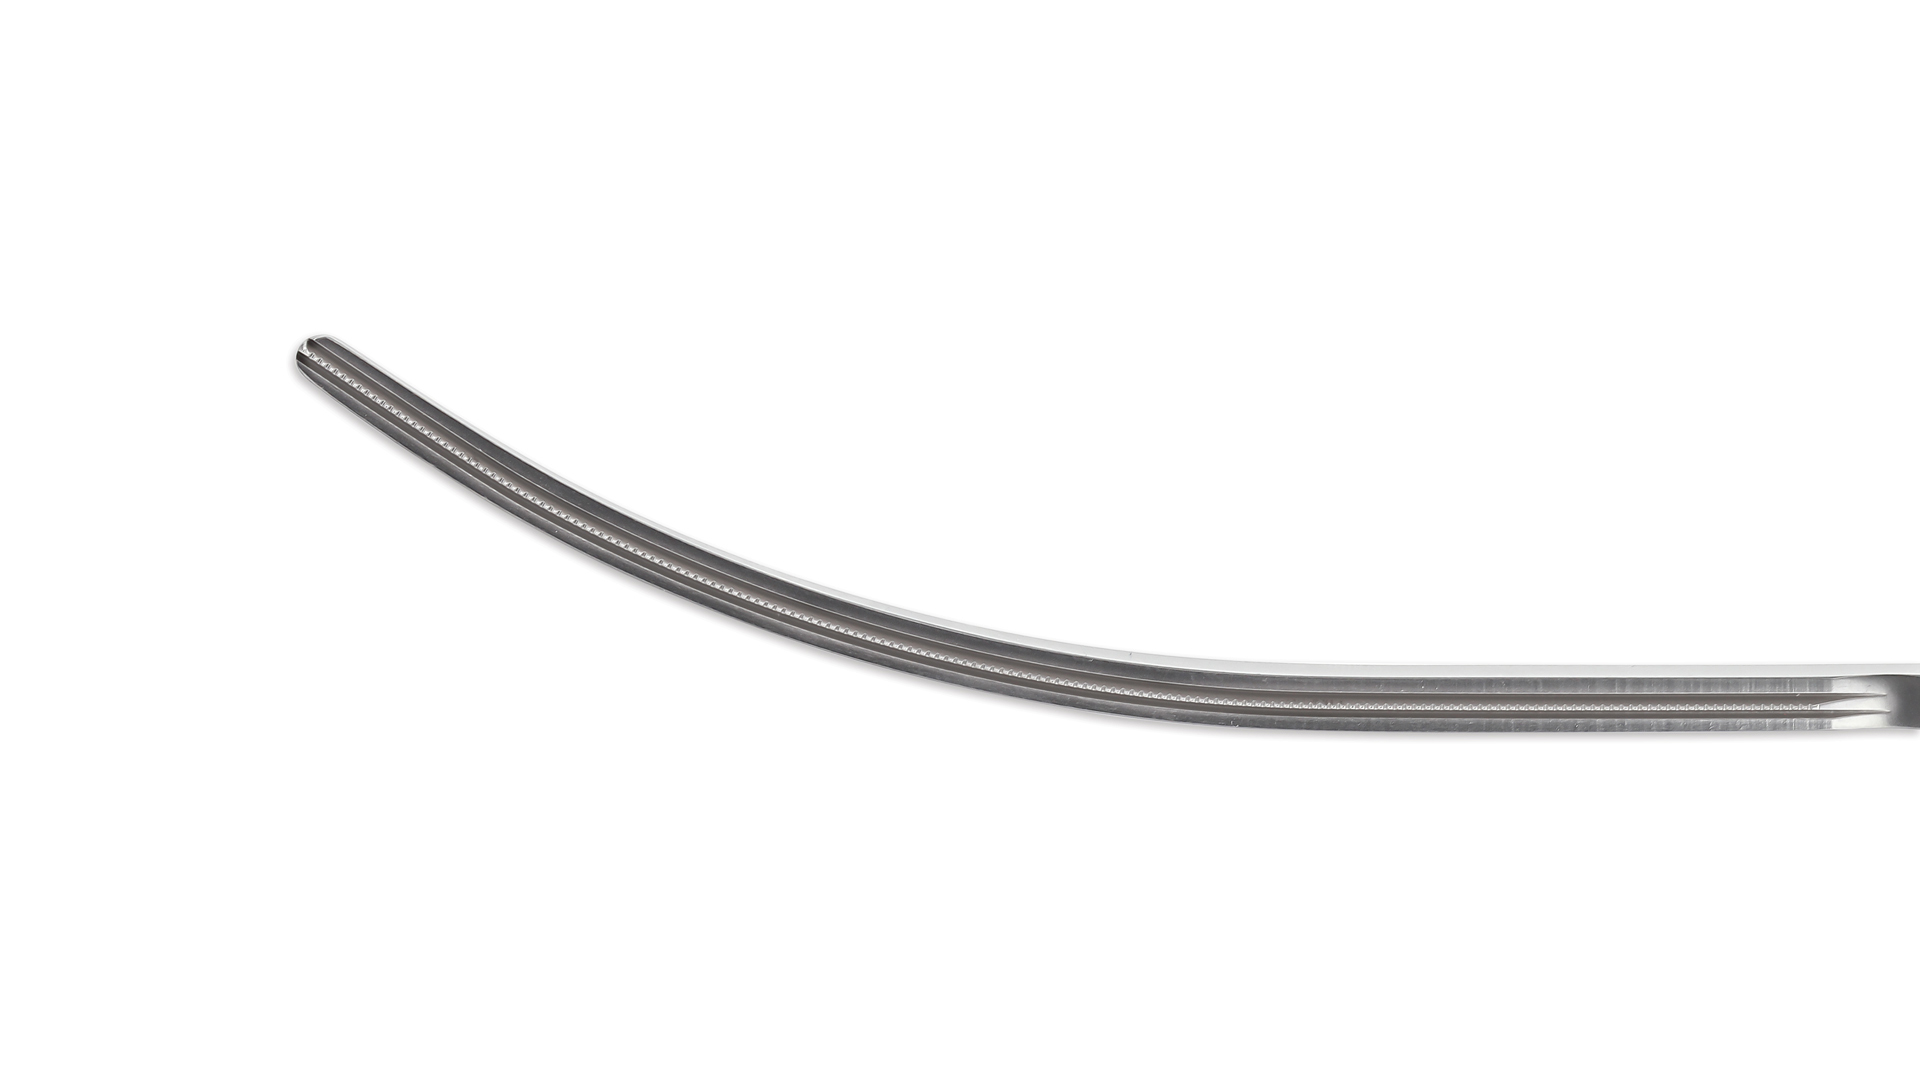 Thoracoscopic DeBakey Clamp - 110mm Curved 1x2 DeBakey Atraumatic Tapered jaws